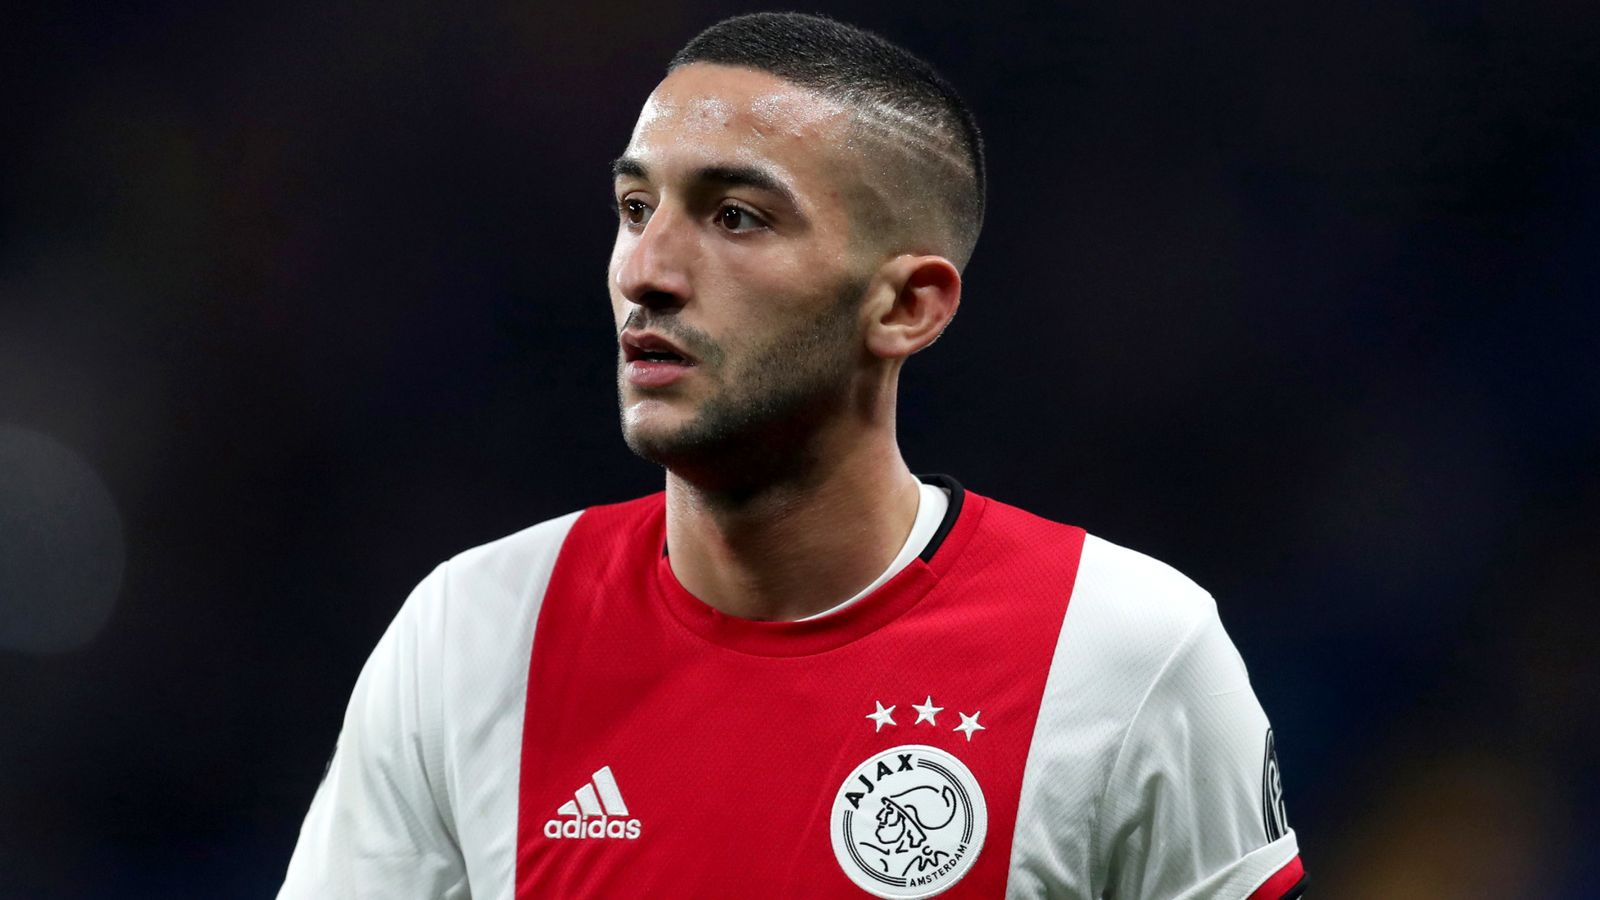 Hakim Ziyech: Chelsea to sign Ajax winger in £33.3m deal at end of season